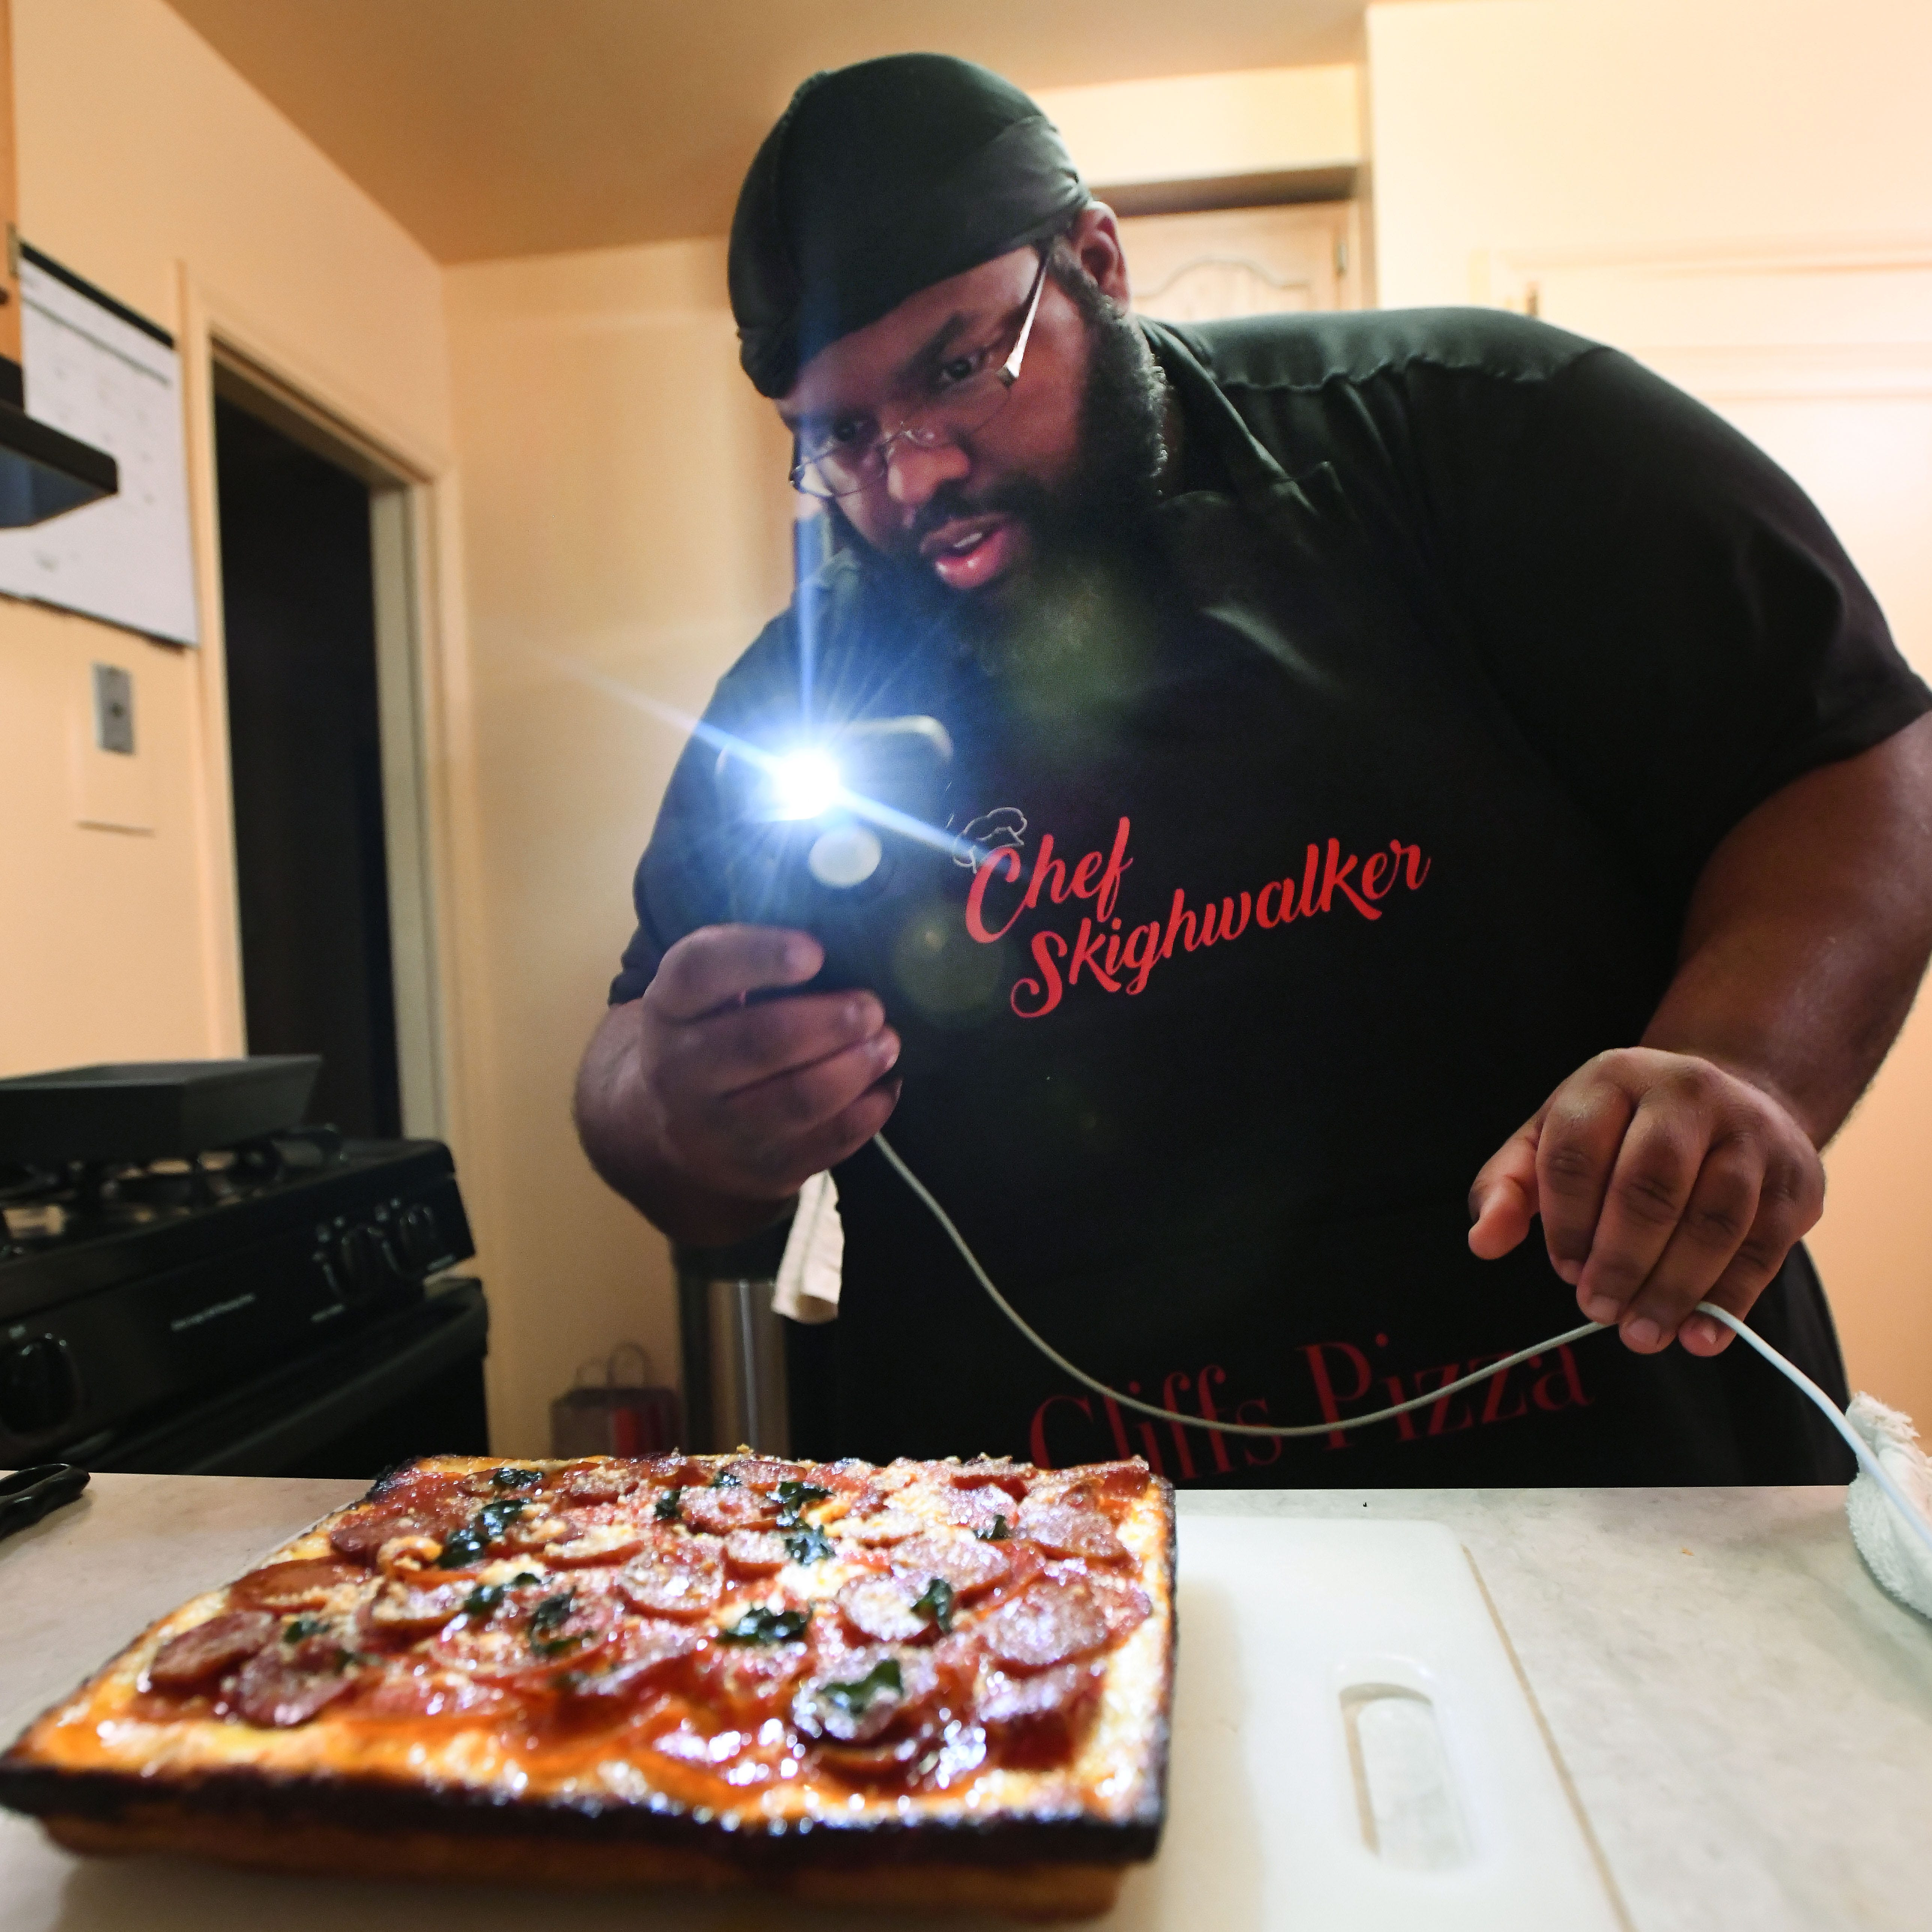 Cooking up likes: Pontiac entrepreneur's 'Instachef' celebrates DIY chefs